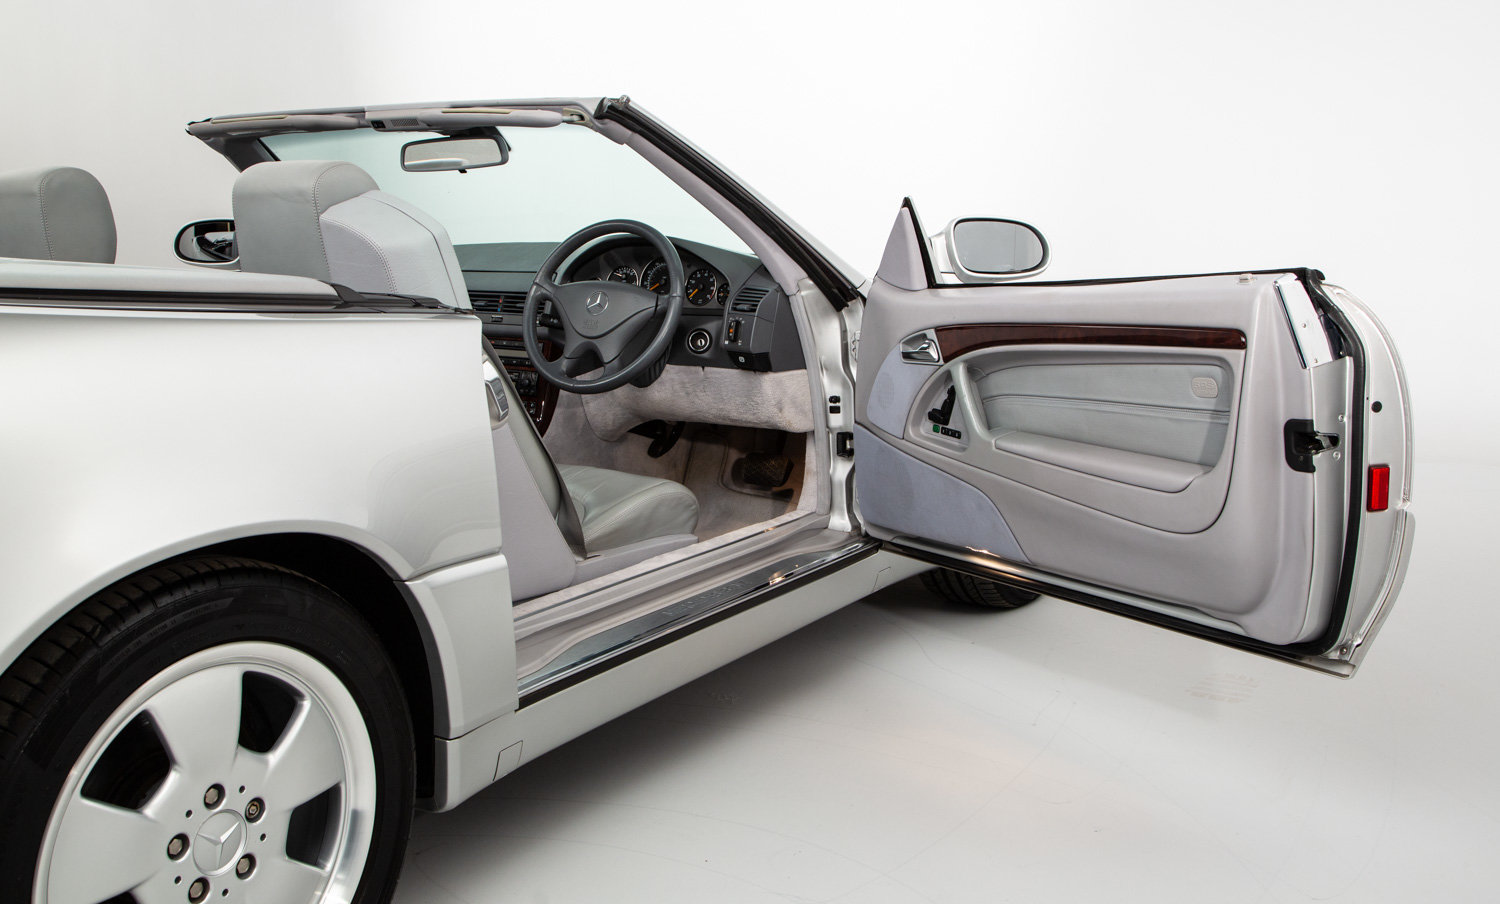 1999 MERCEDES SL320  For Sale (picture 10 of 22)